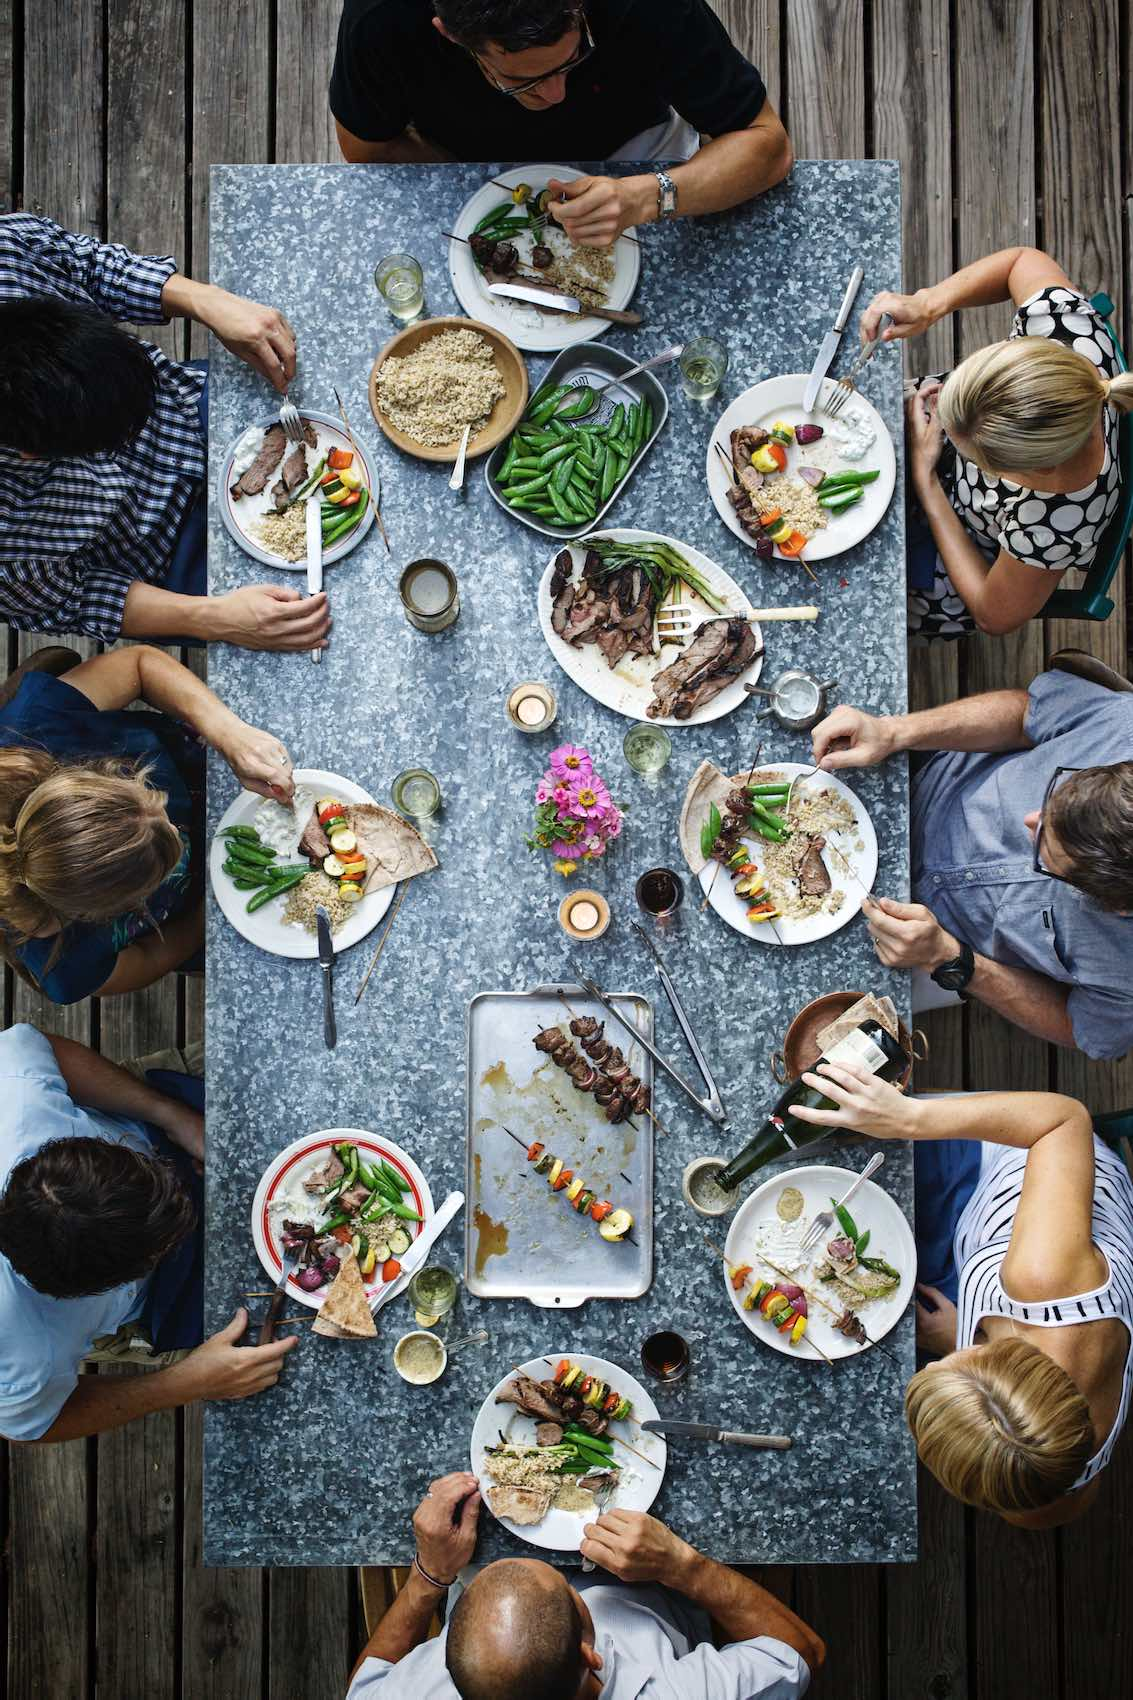 Jody Horton Photography - Outdoor dinner spread on granite table.